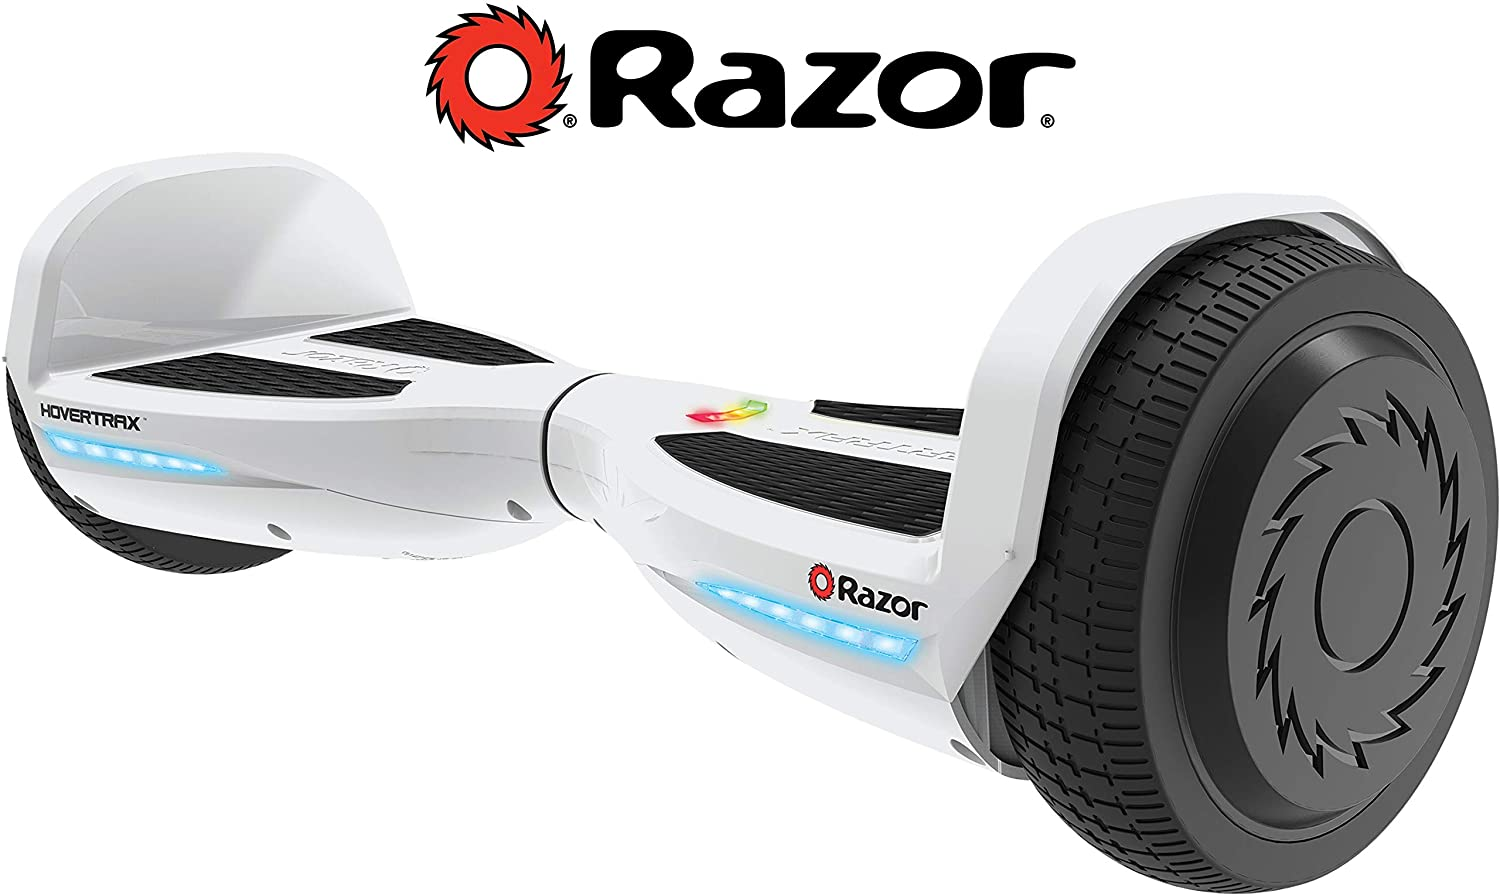 Razor Hovertrax 1.5 Hoverboard Self-Balancing Smart Scooter, White